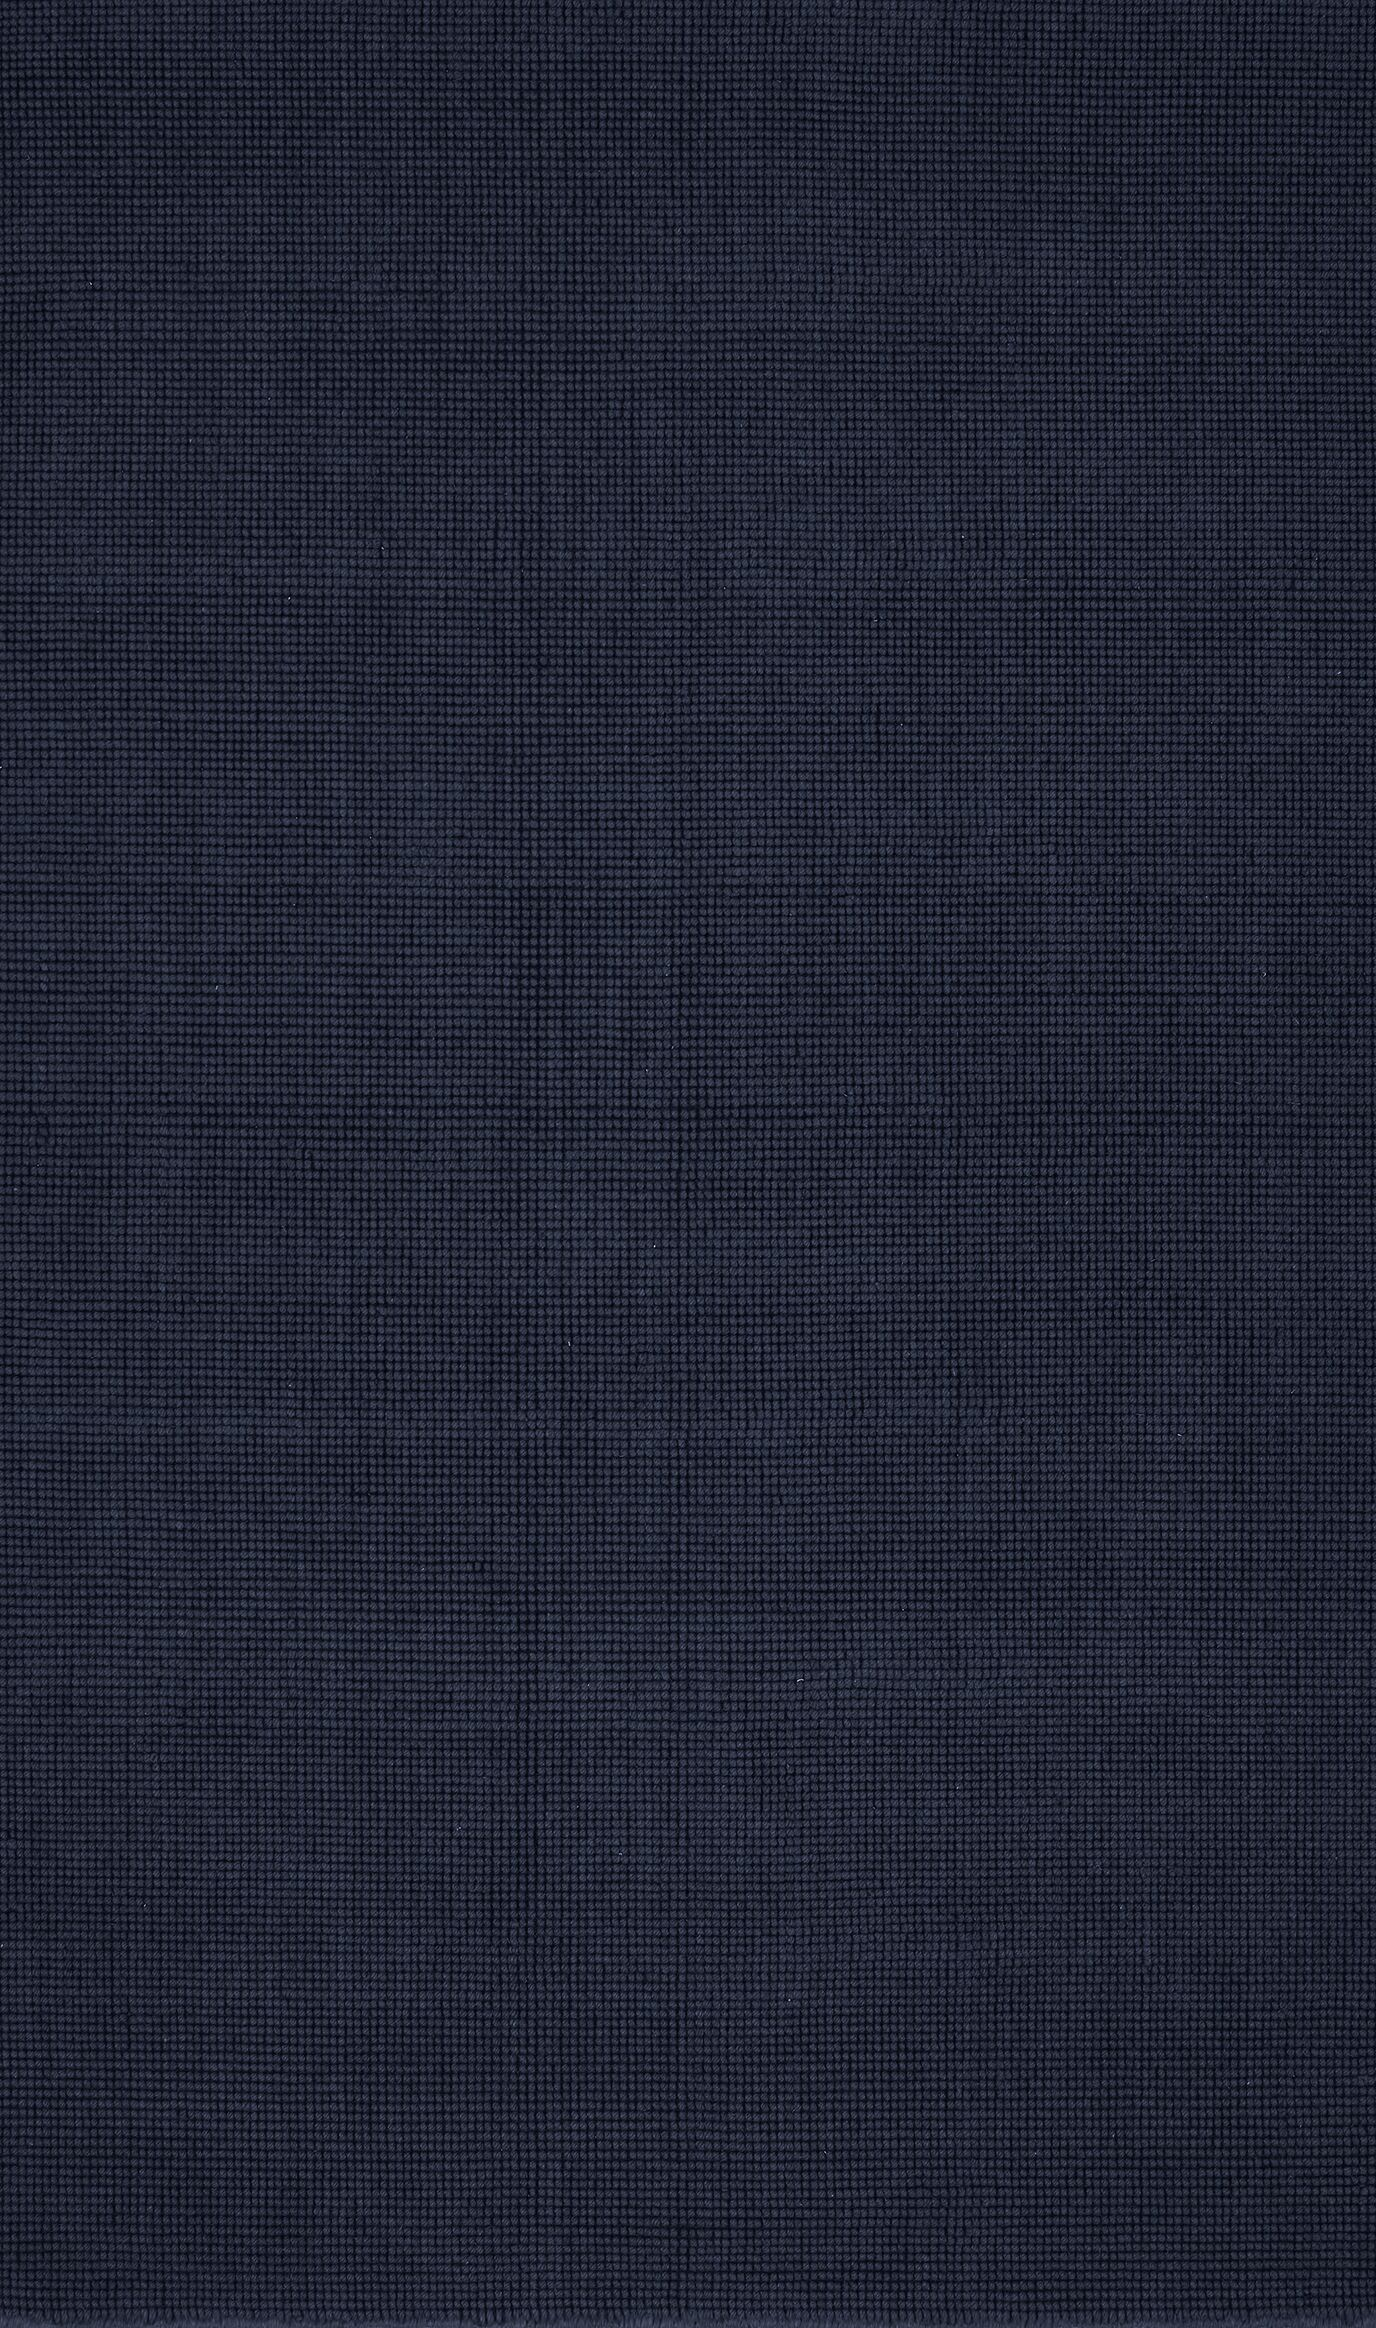 Dionne Hand-Tufted Navy Area Rug Rug Size: Rectangle 3'6